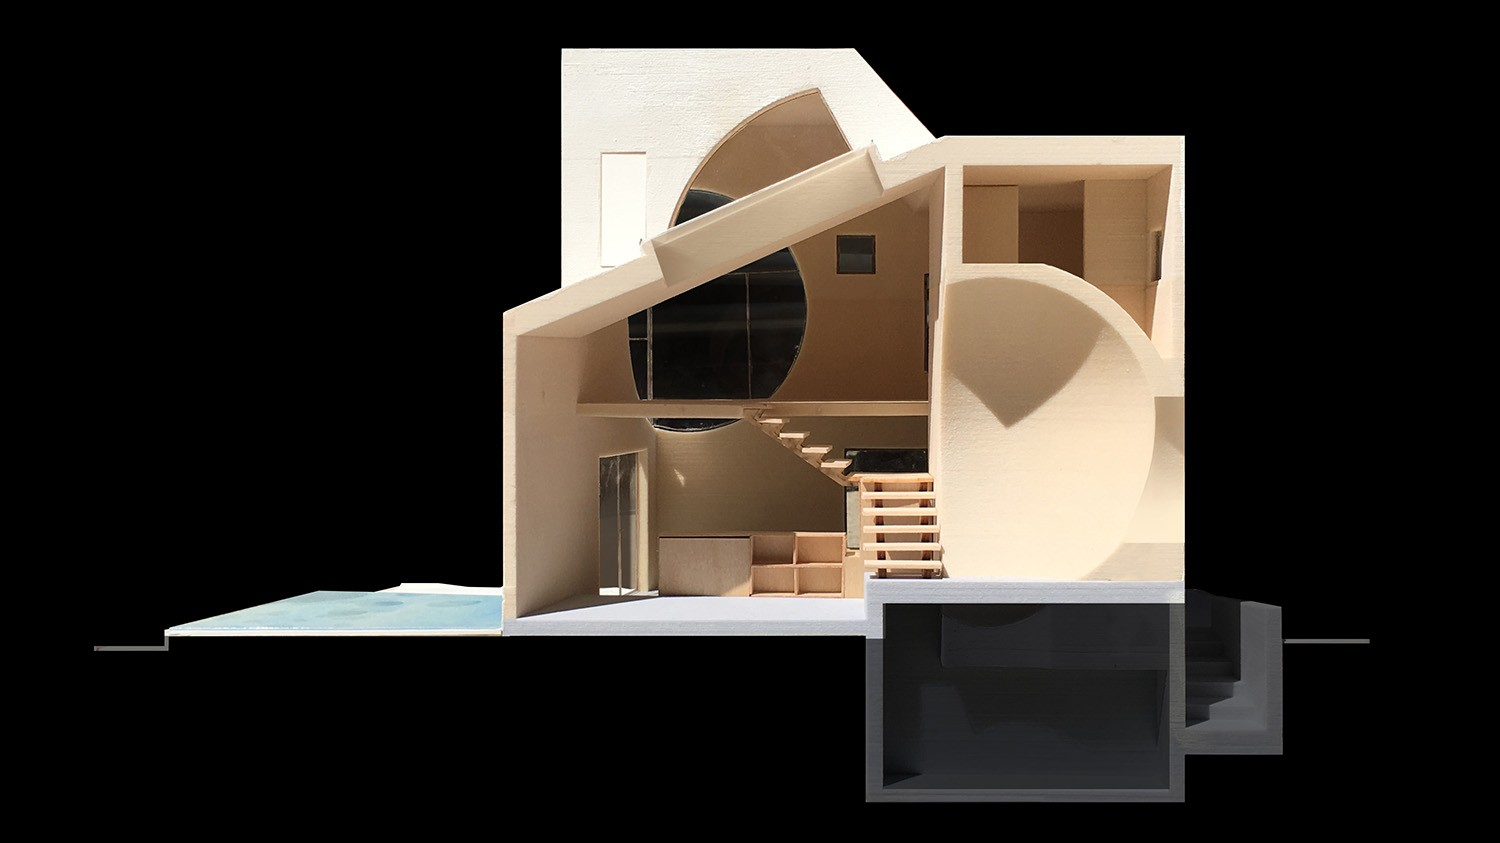 https://stevenholl.sfo2.digitaloceanspaces.com/uploads/projects/project-images/StevenHollArchitects_EOI_RESIDENCE SECTION_EDIT_3_WH.jpg